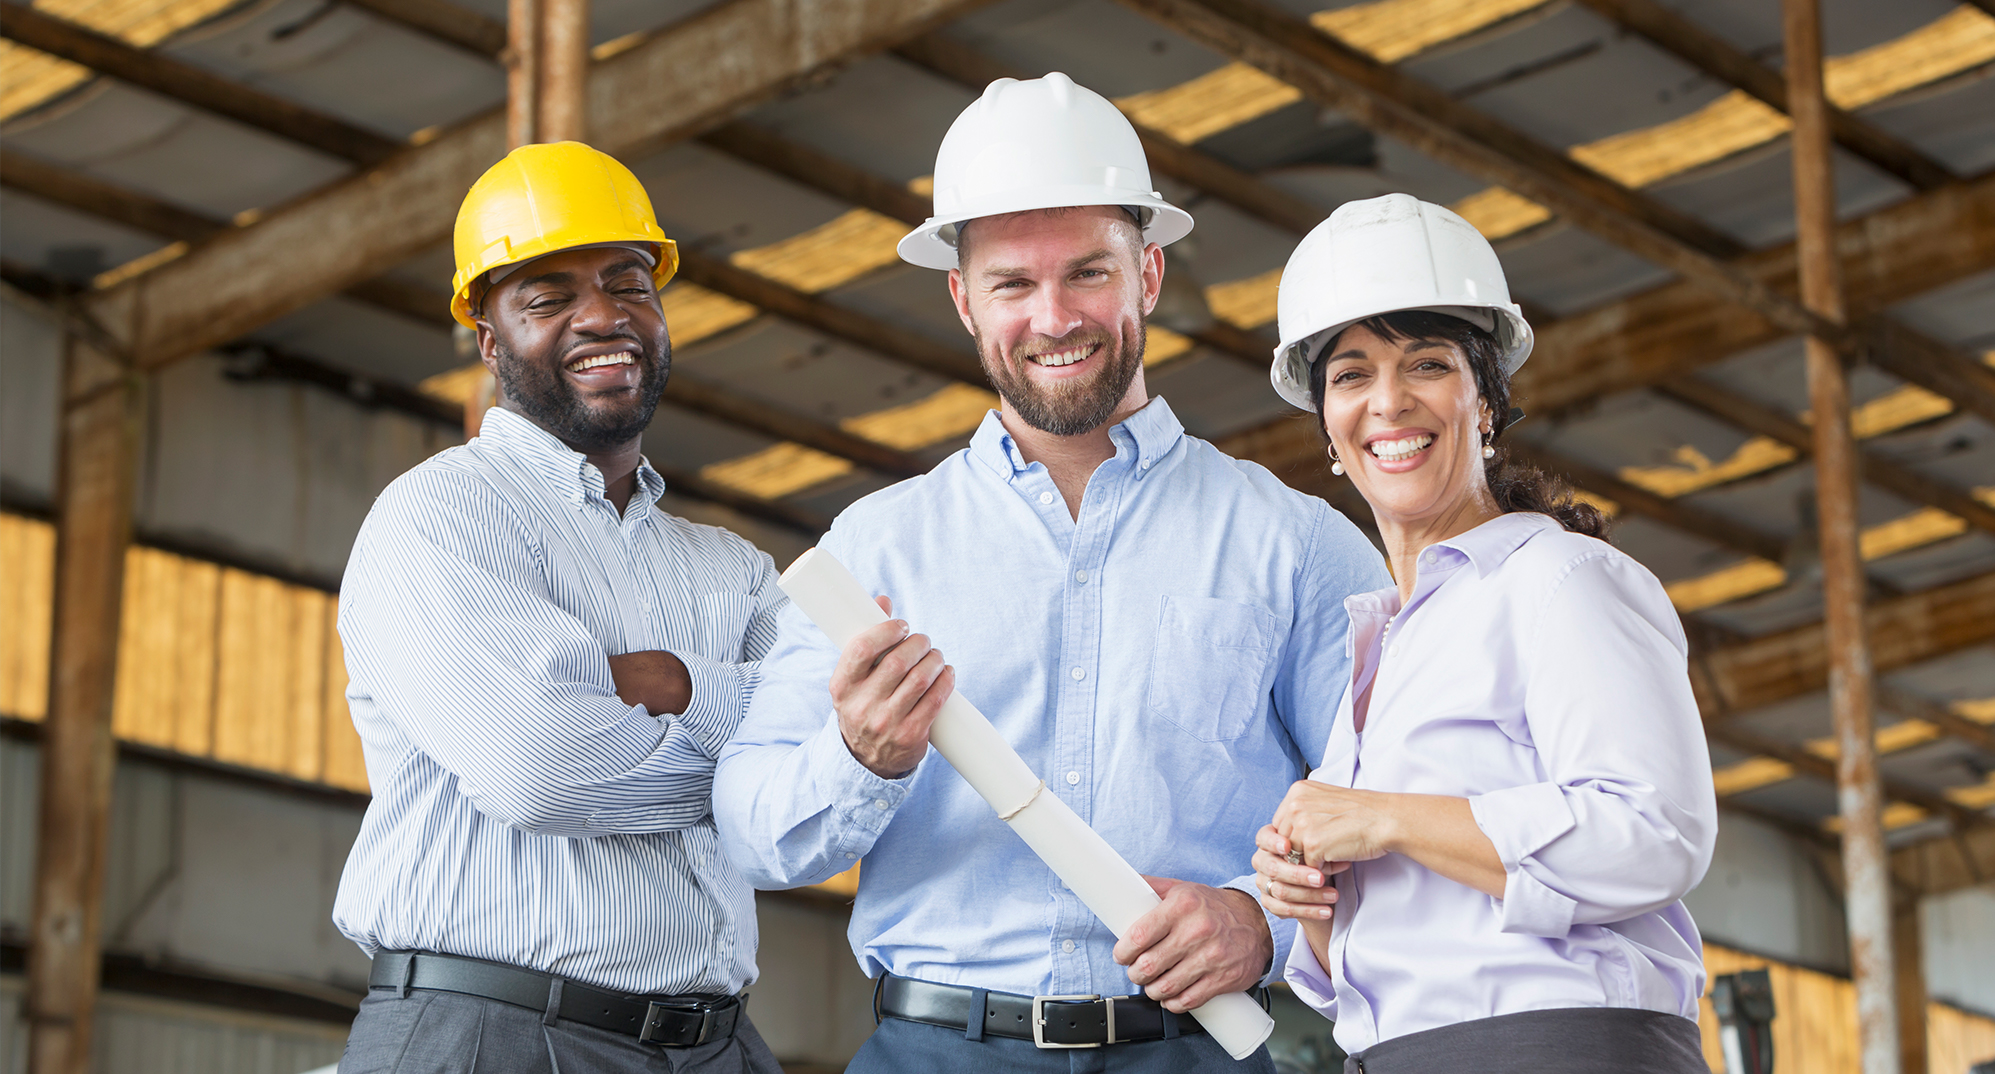 3 people standing in warehouse with hardhats